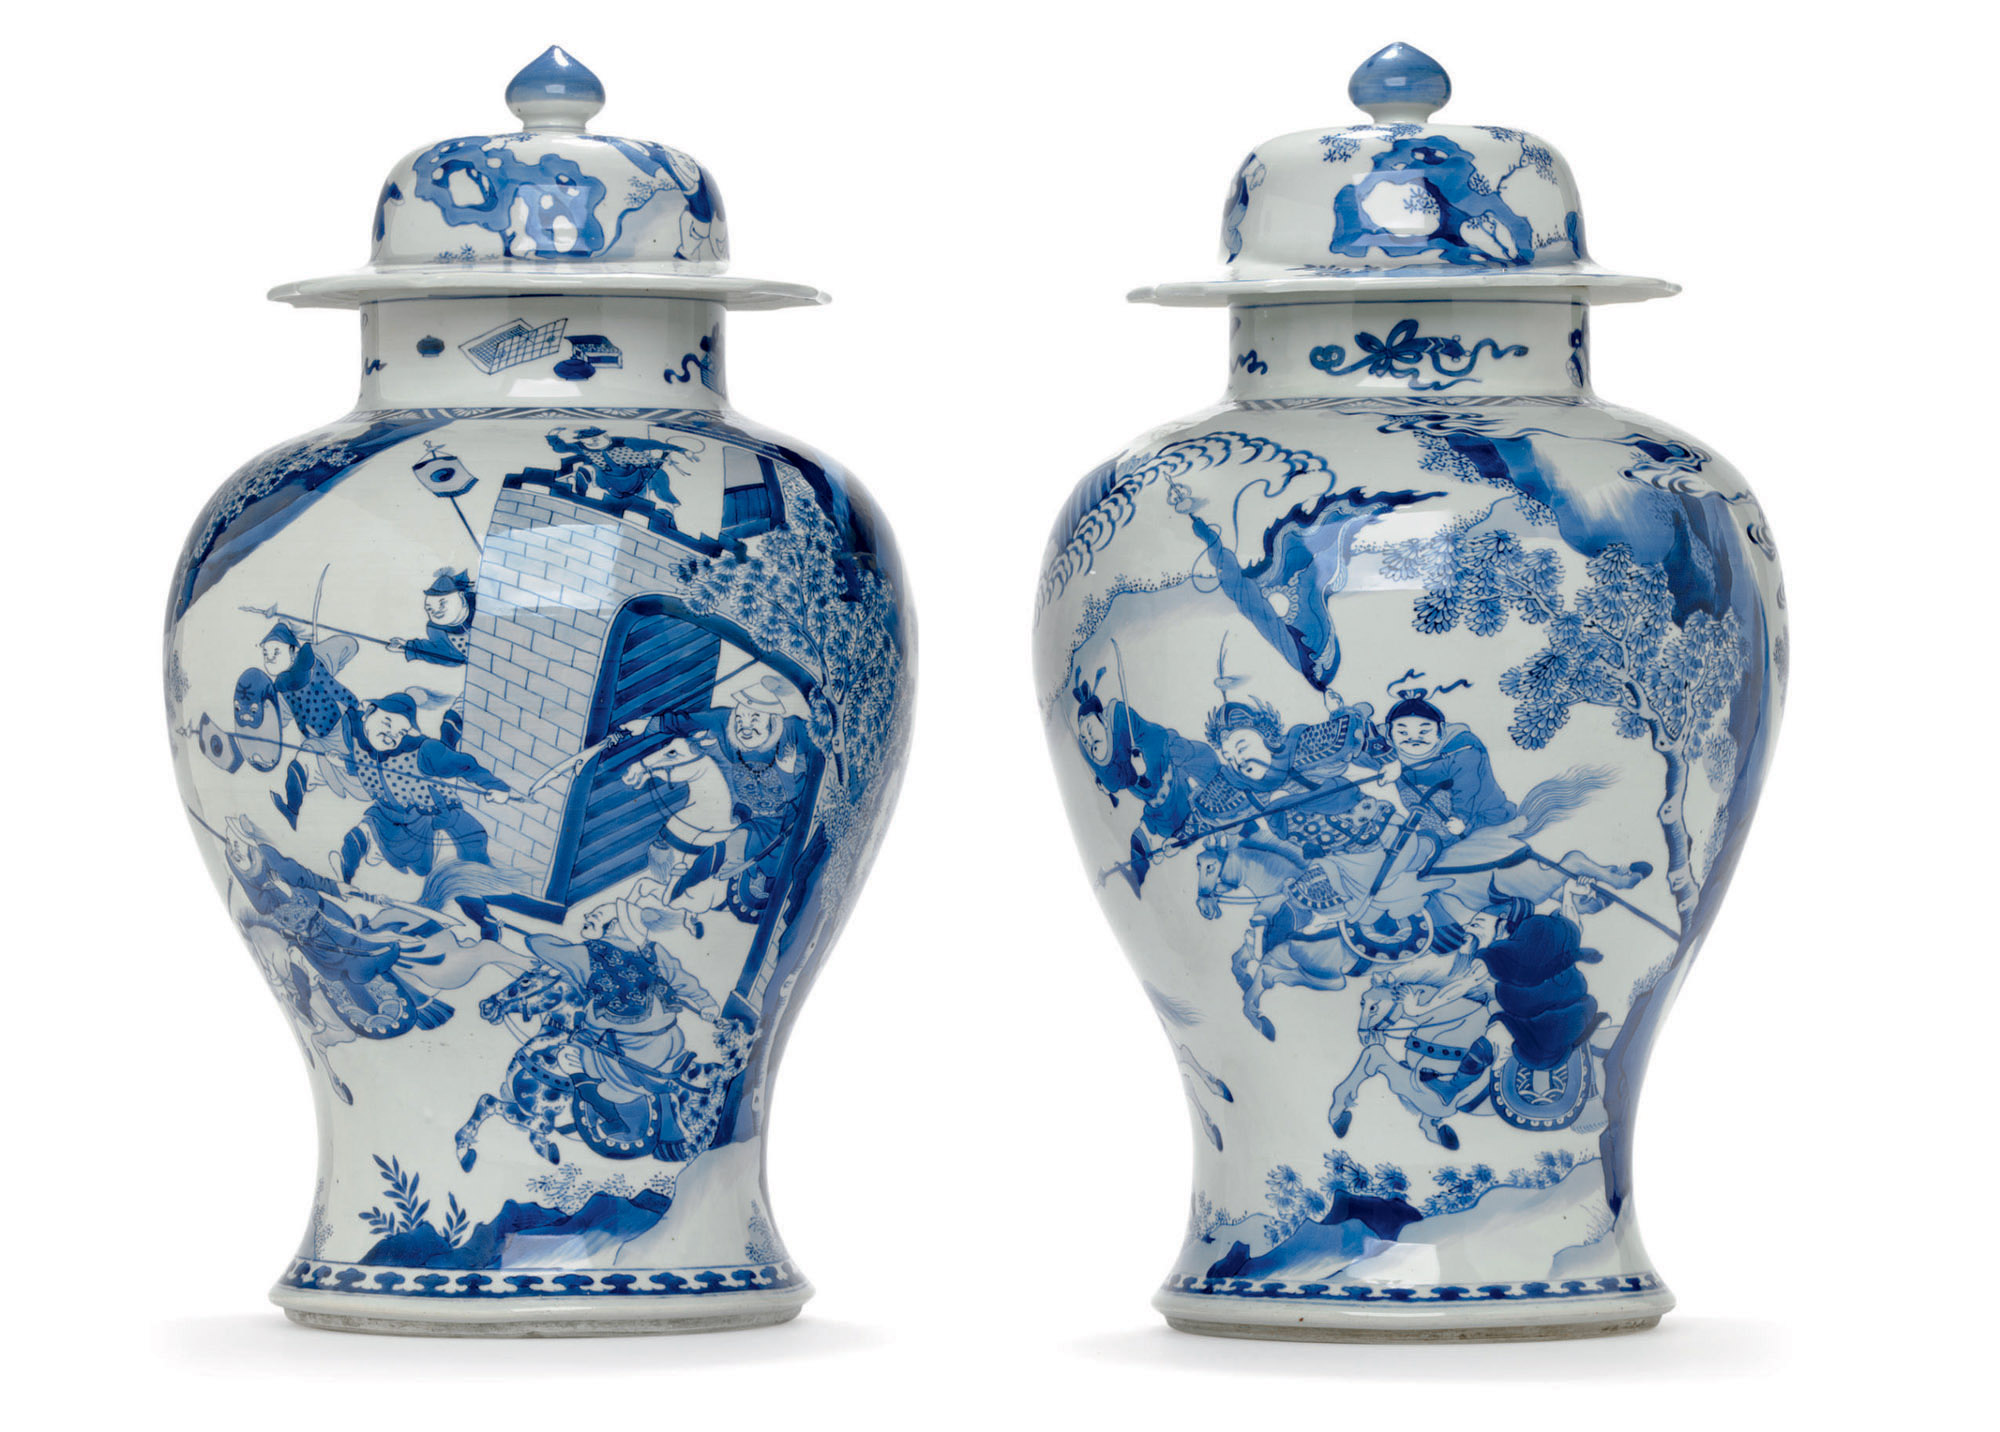 A VERY LARGE PAIR OF BLUE AND WHITE BALUSTER JARS AND COVERS